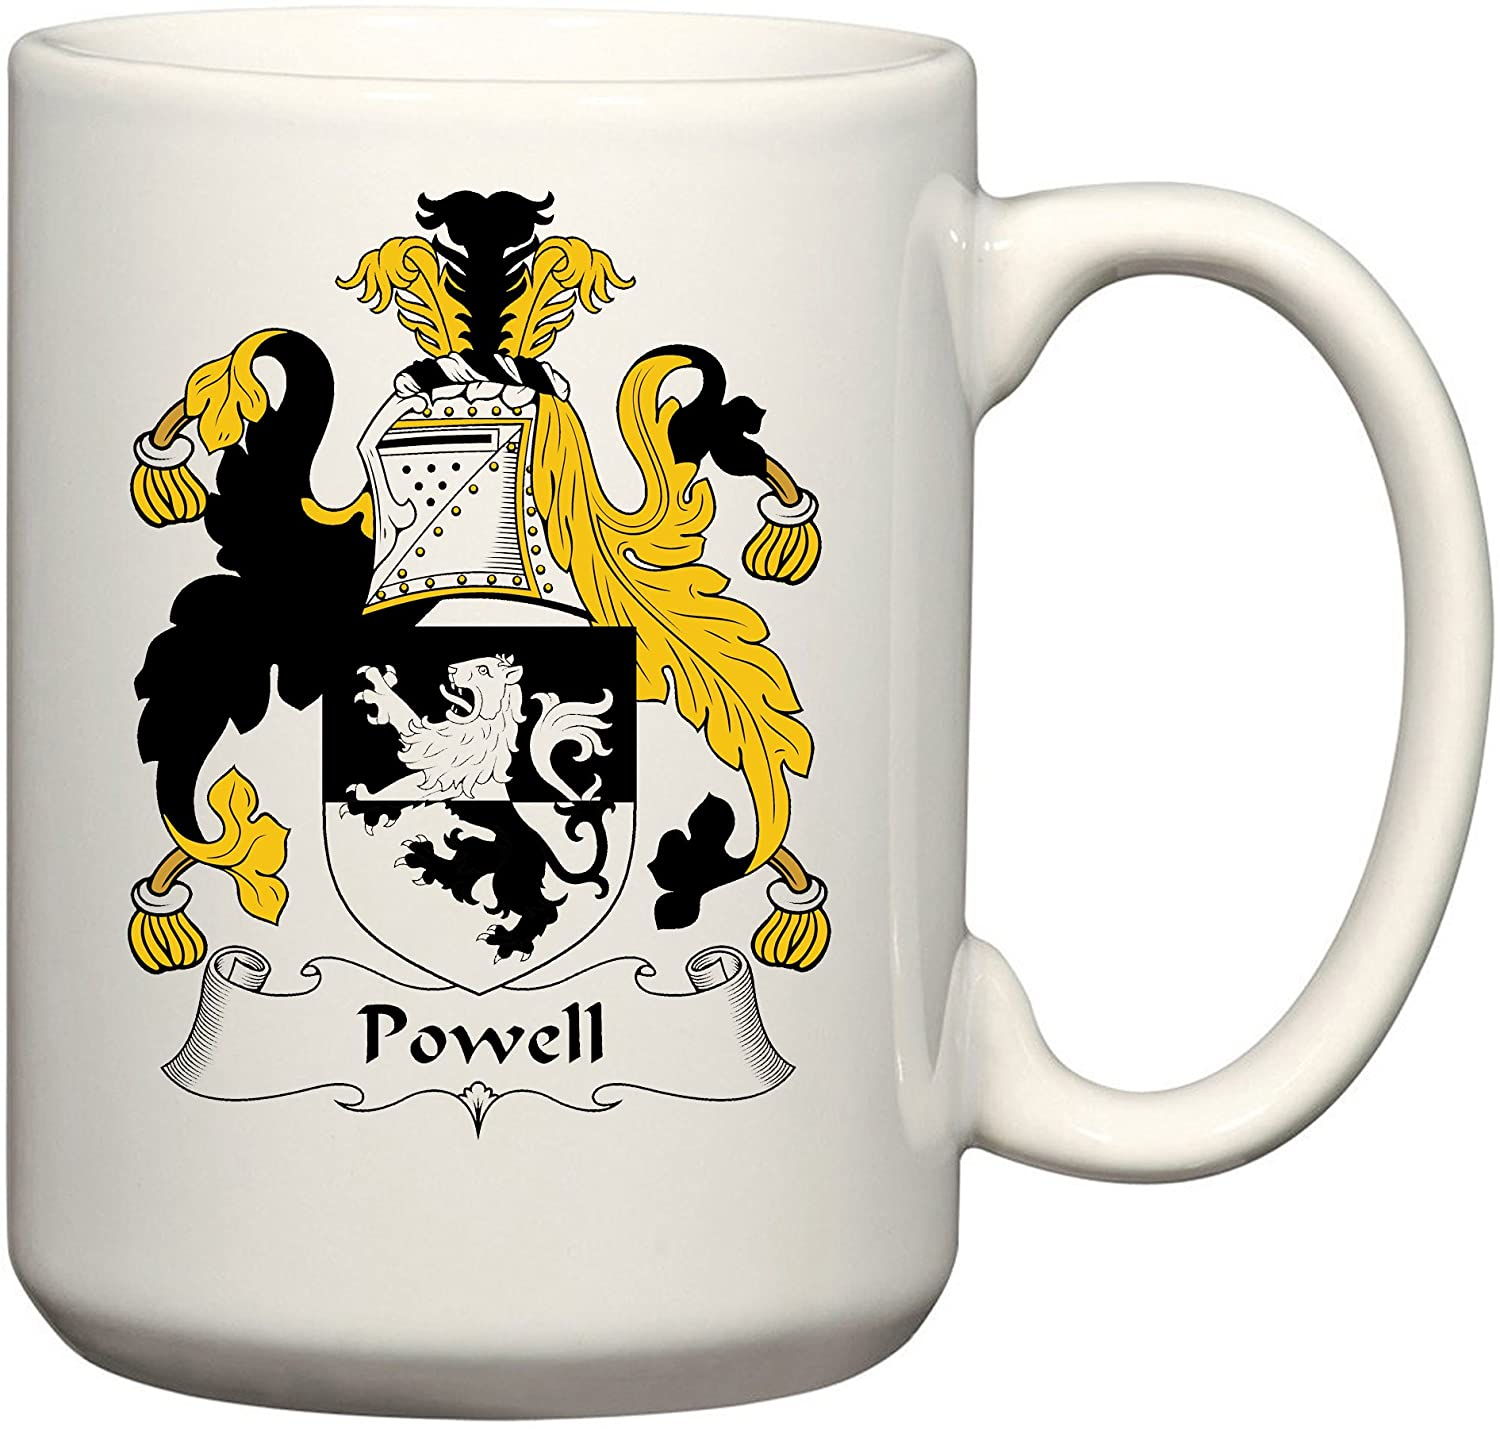 Powell Coat of Arms/Powell Family Crest 15 Oz Ceramic Coffee/Cocoa Mug by Carpe Diem Designs, Made in the U.S.A.